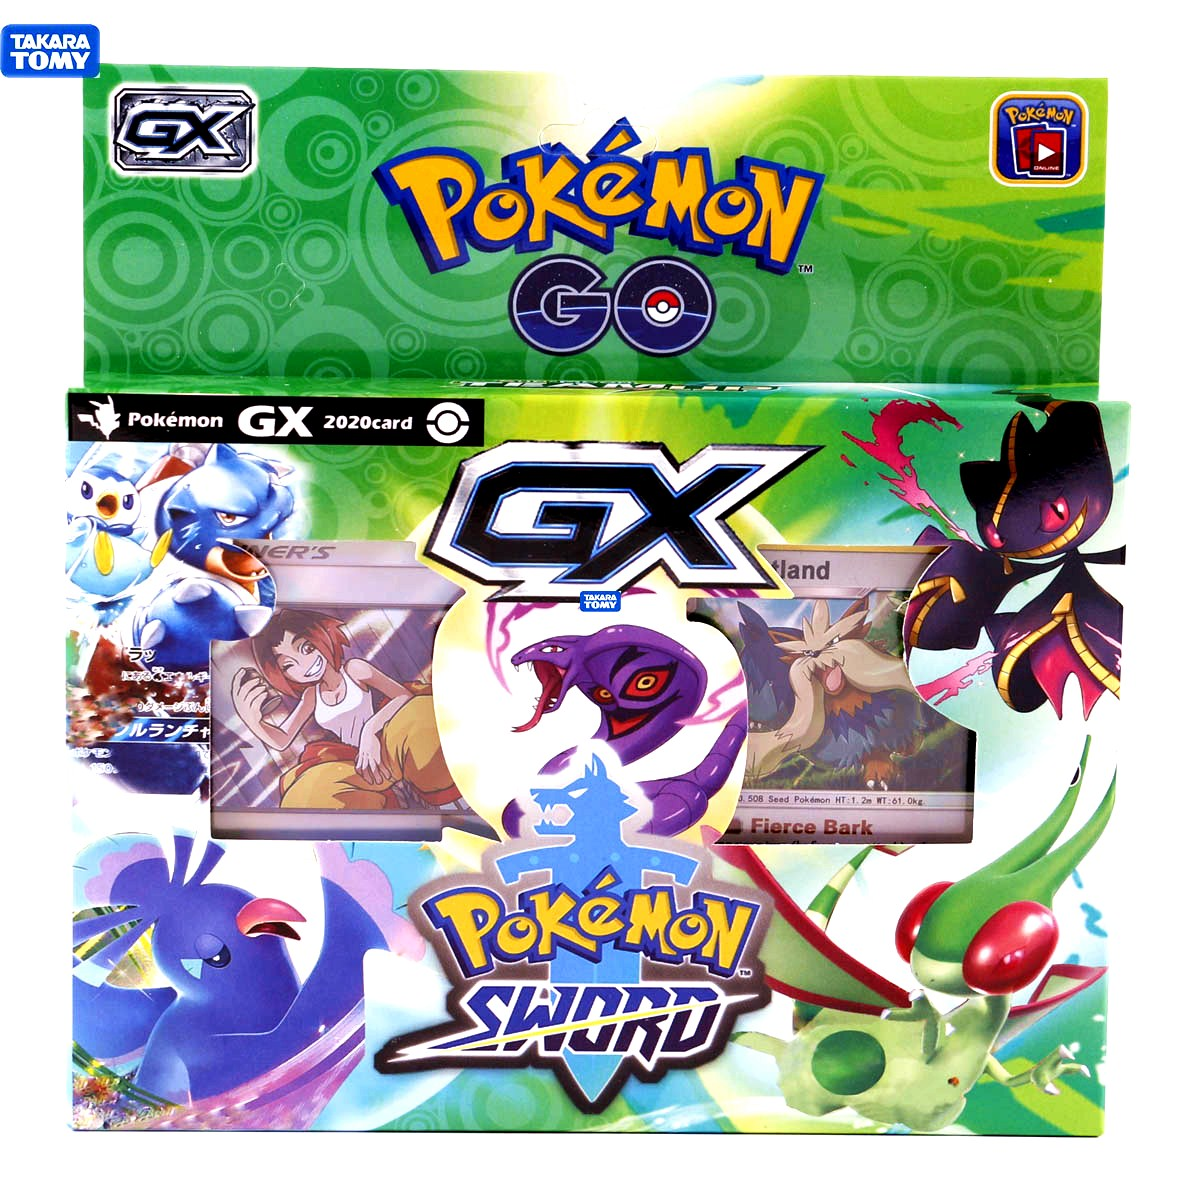 TOMY Pokemon 2020 Latest 54 Cards Pokemon Card  Sword & Shield Box Trading Card Game Kids Collection Toys